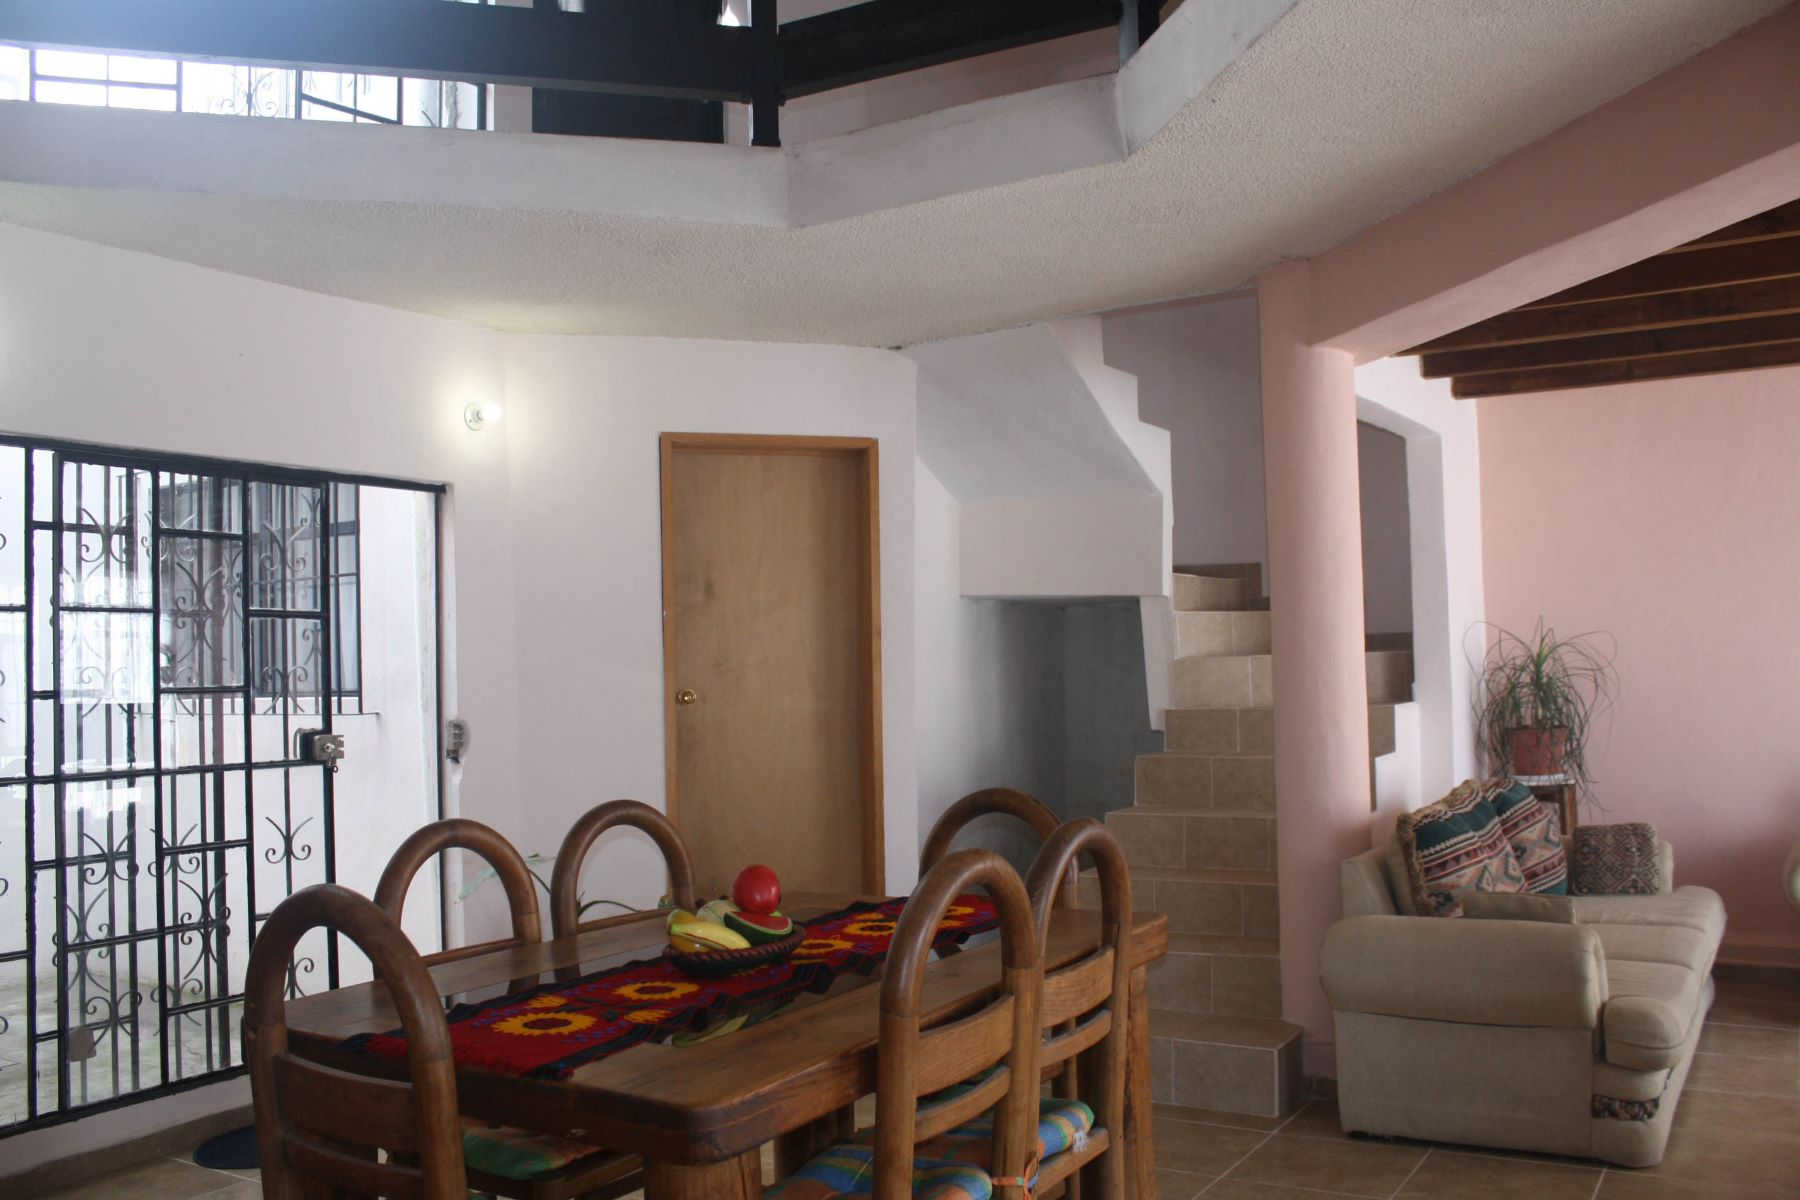 Single Family Home for Sale at Casa Mexicana Calderón San Miguel De Allende, Guanajuato, 37712 Mexico